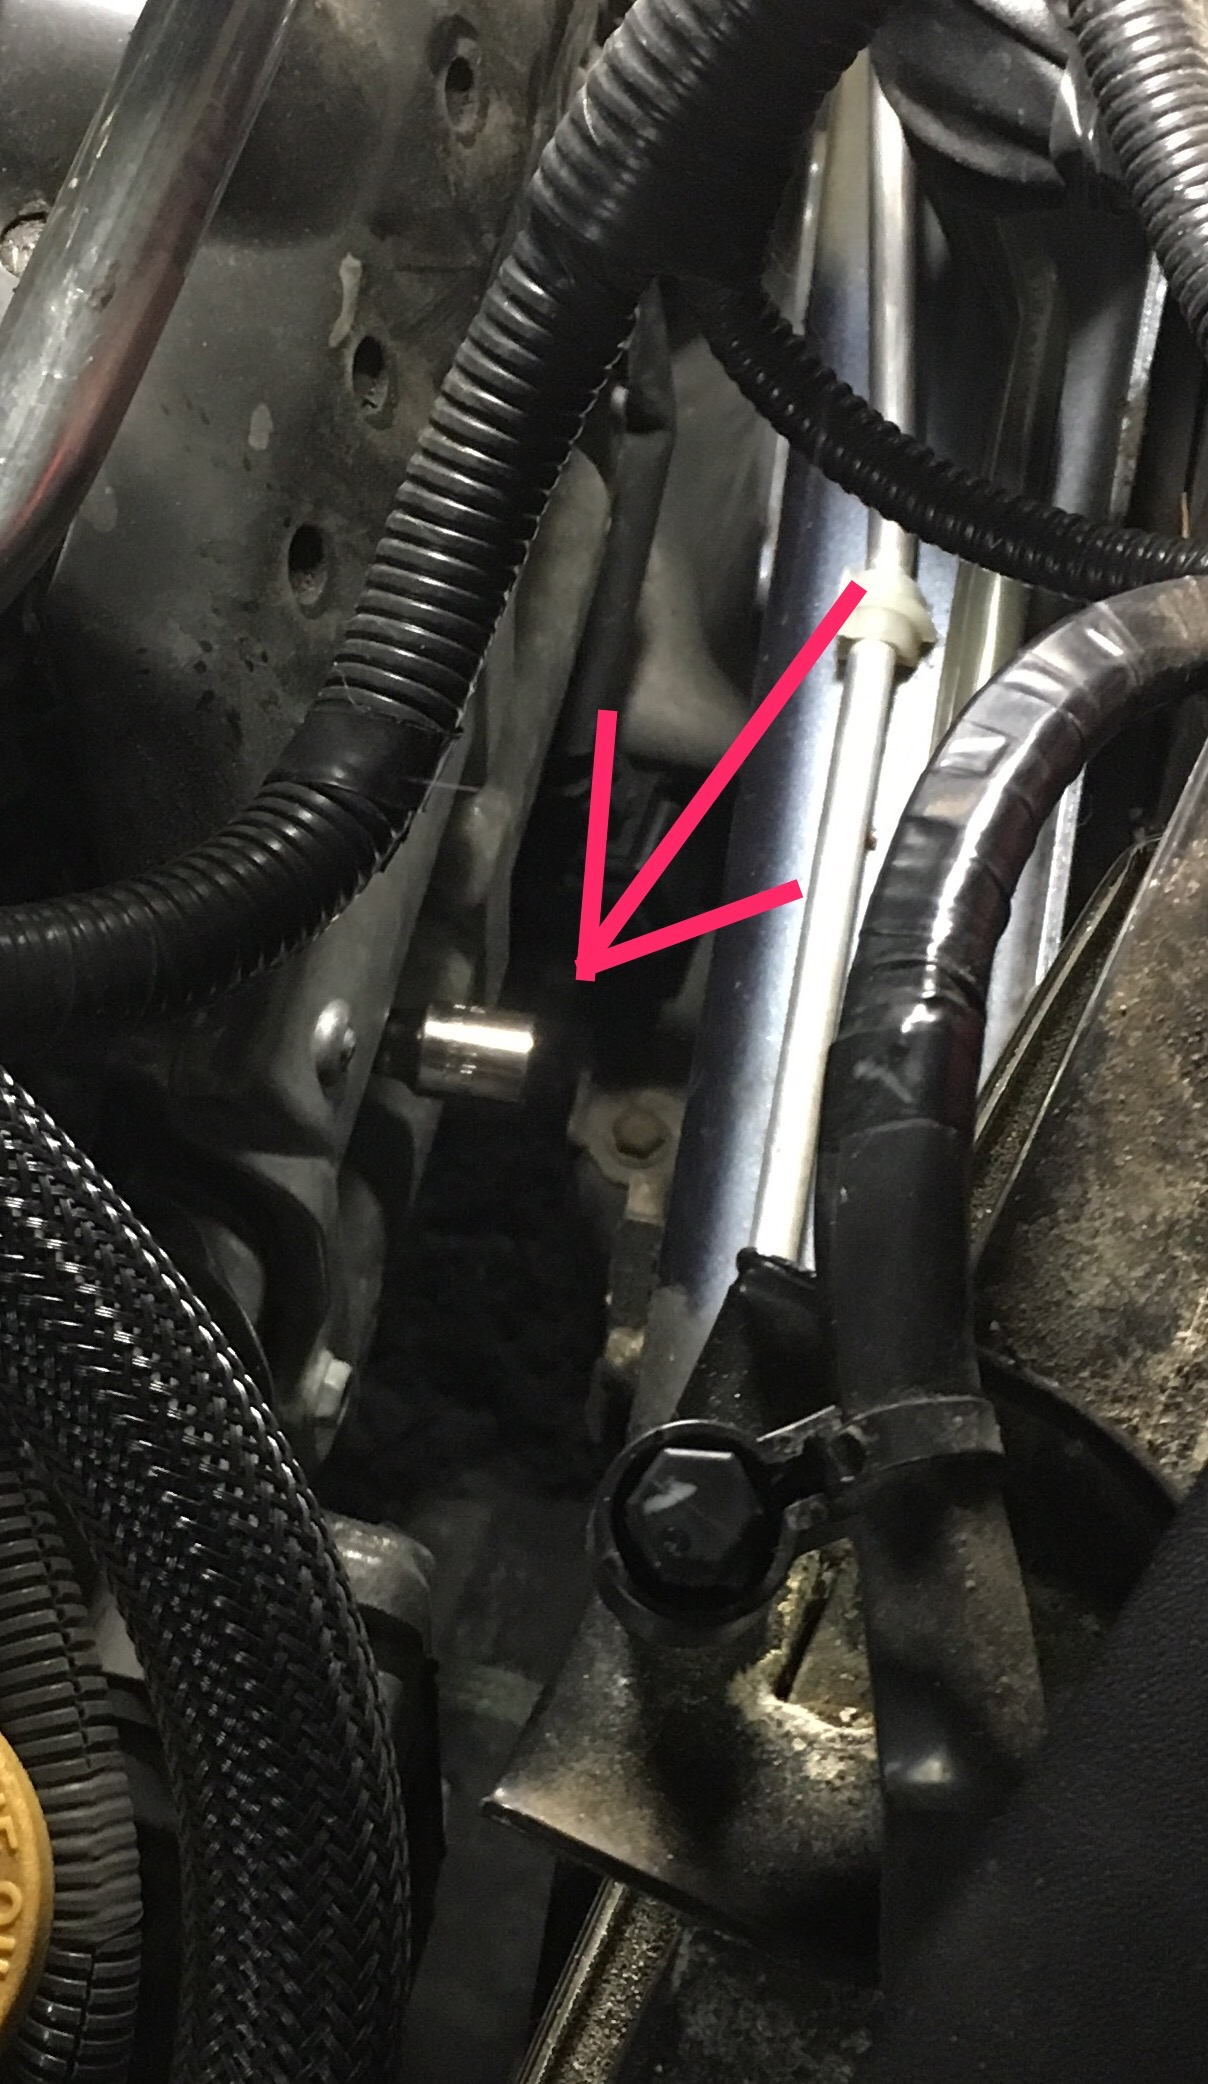 D I Limited Faltering Ignition Spark Plug Replacement Fullsizerender on New Subaru Outback